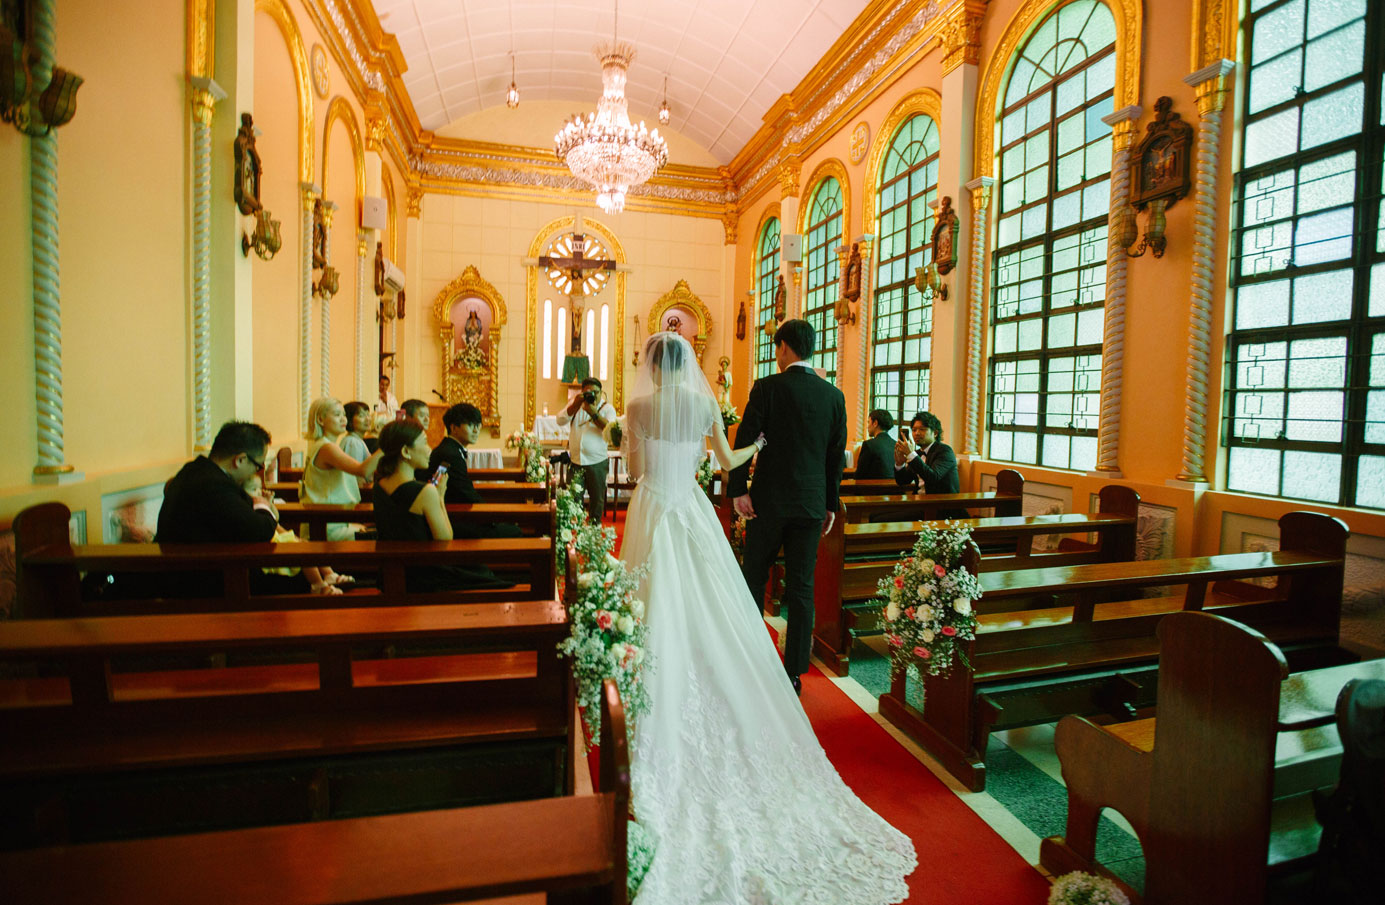 cebuweddingchurch (1)